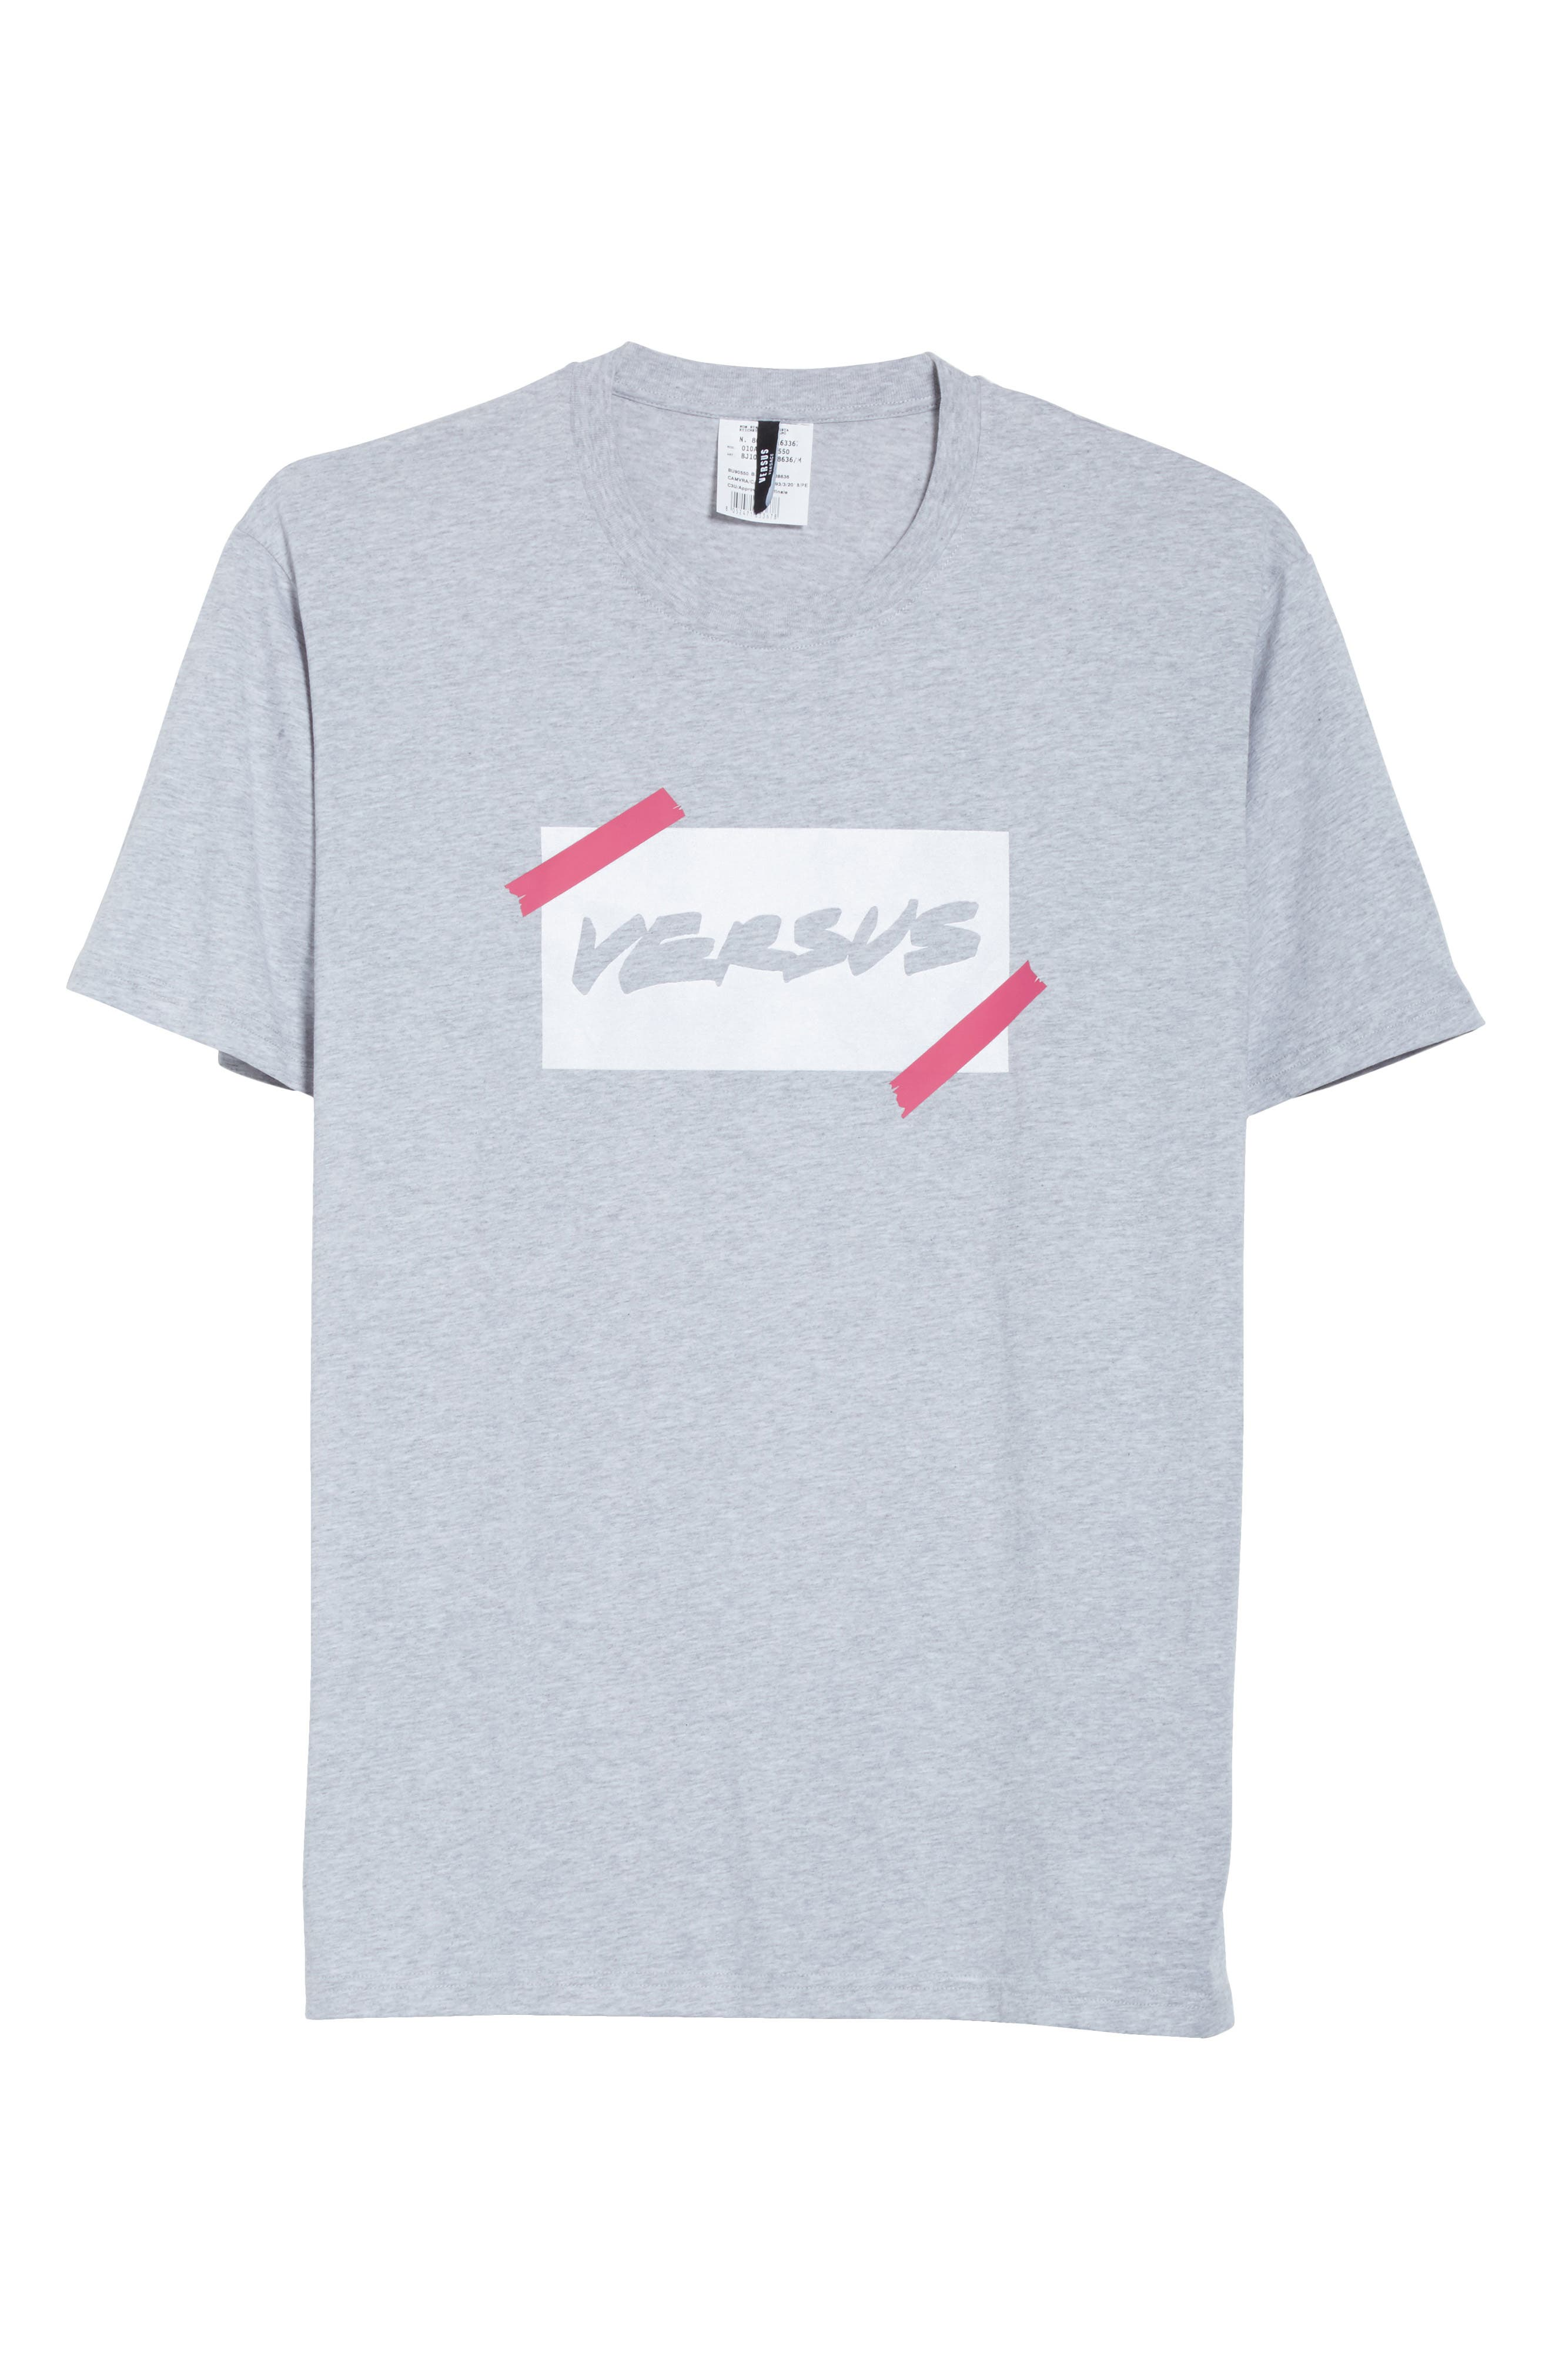 VERSUS by Versace Tape Logo Graphic T-Shirt,                             Alternate thumbnail 6, color,                             052